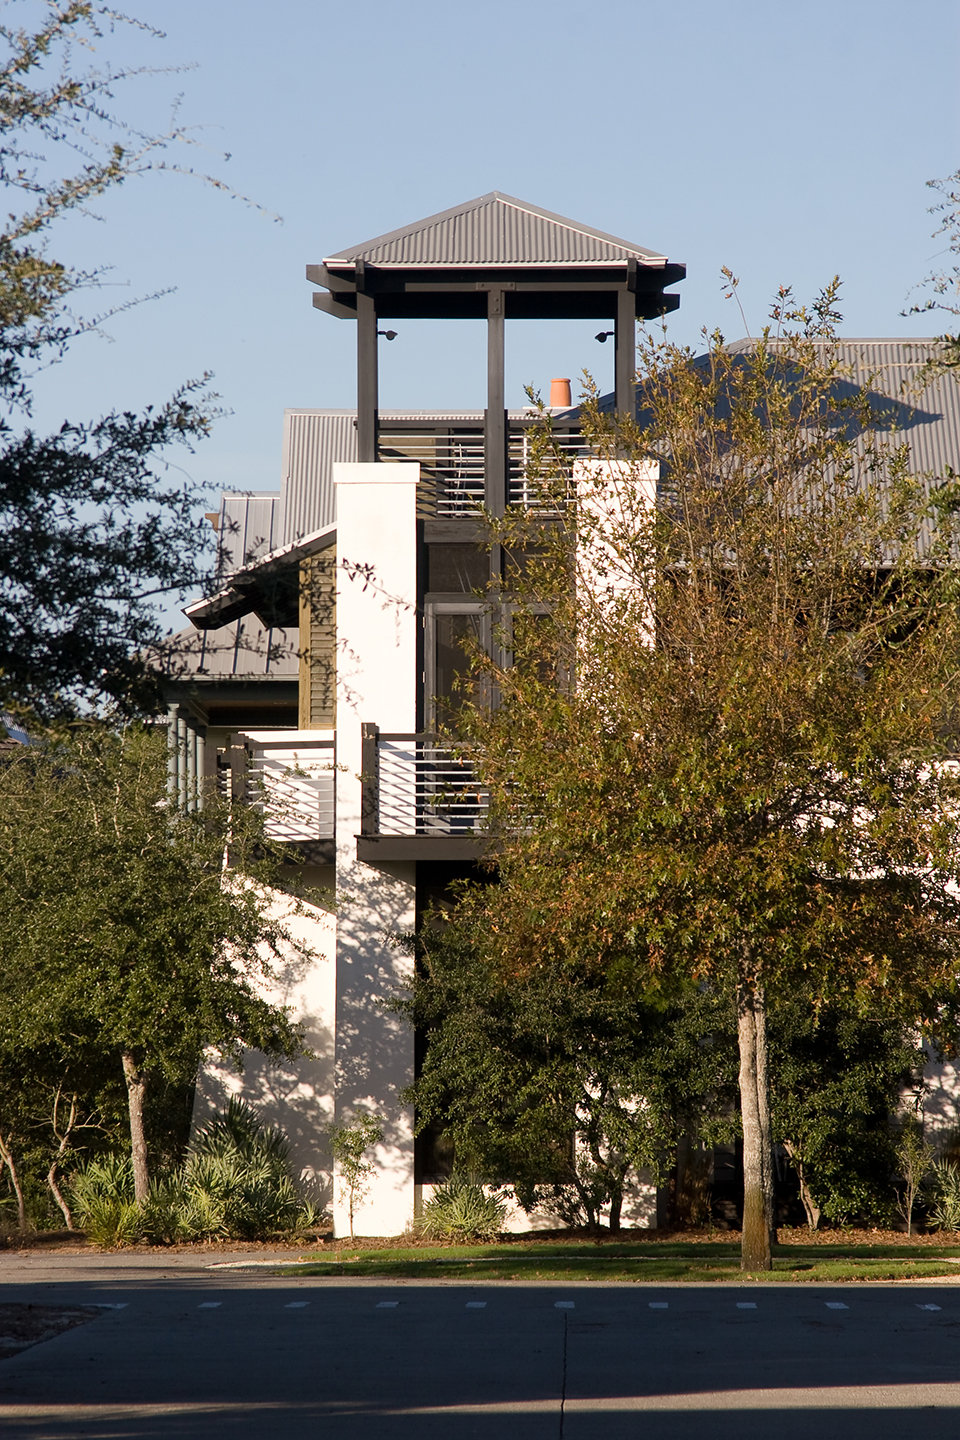 McNamara-Rosemary Beach-Bridgetown Avenue House-Exterior-Tower